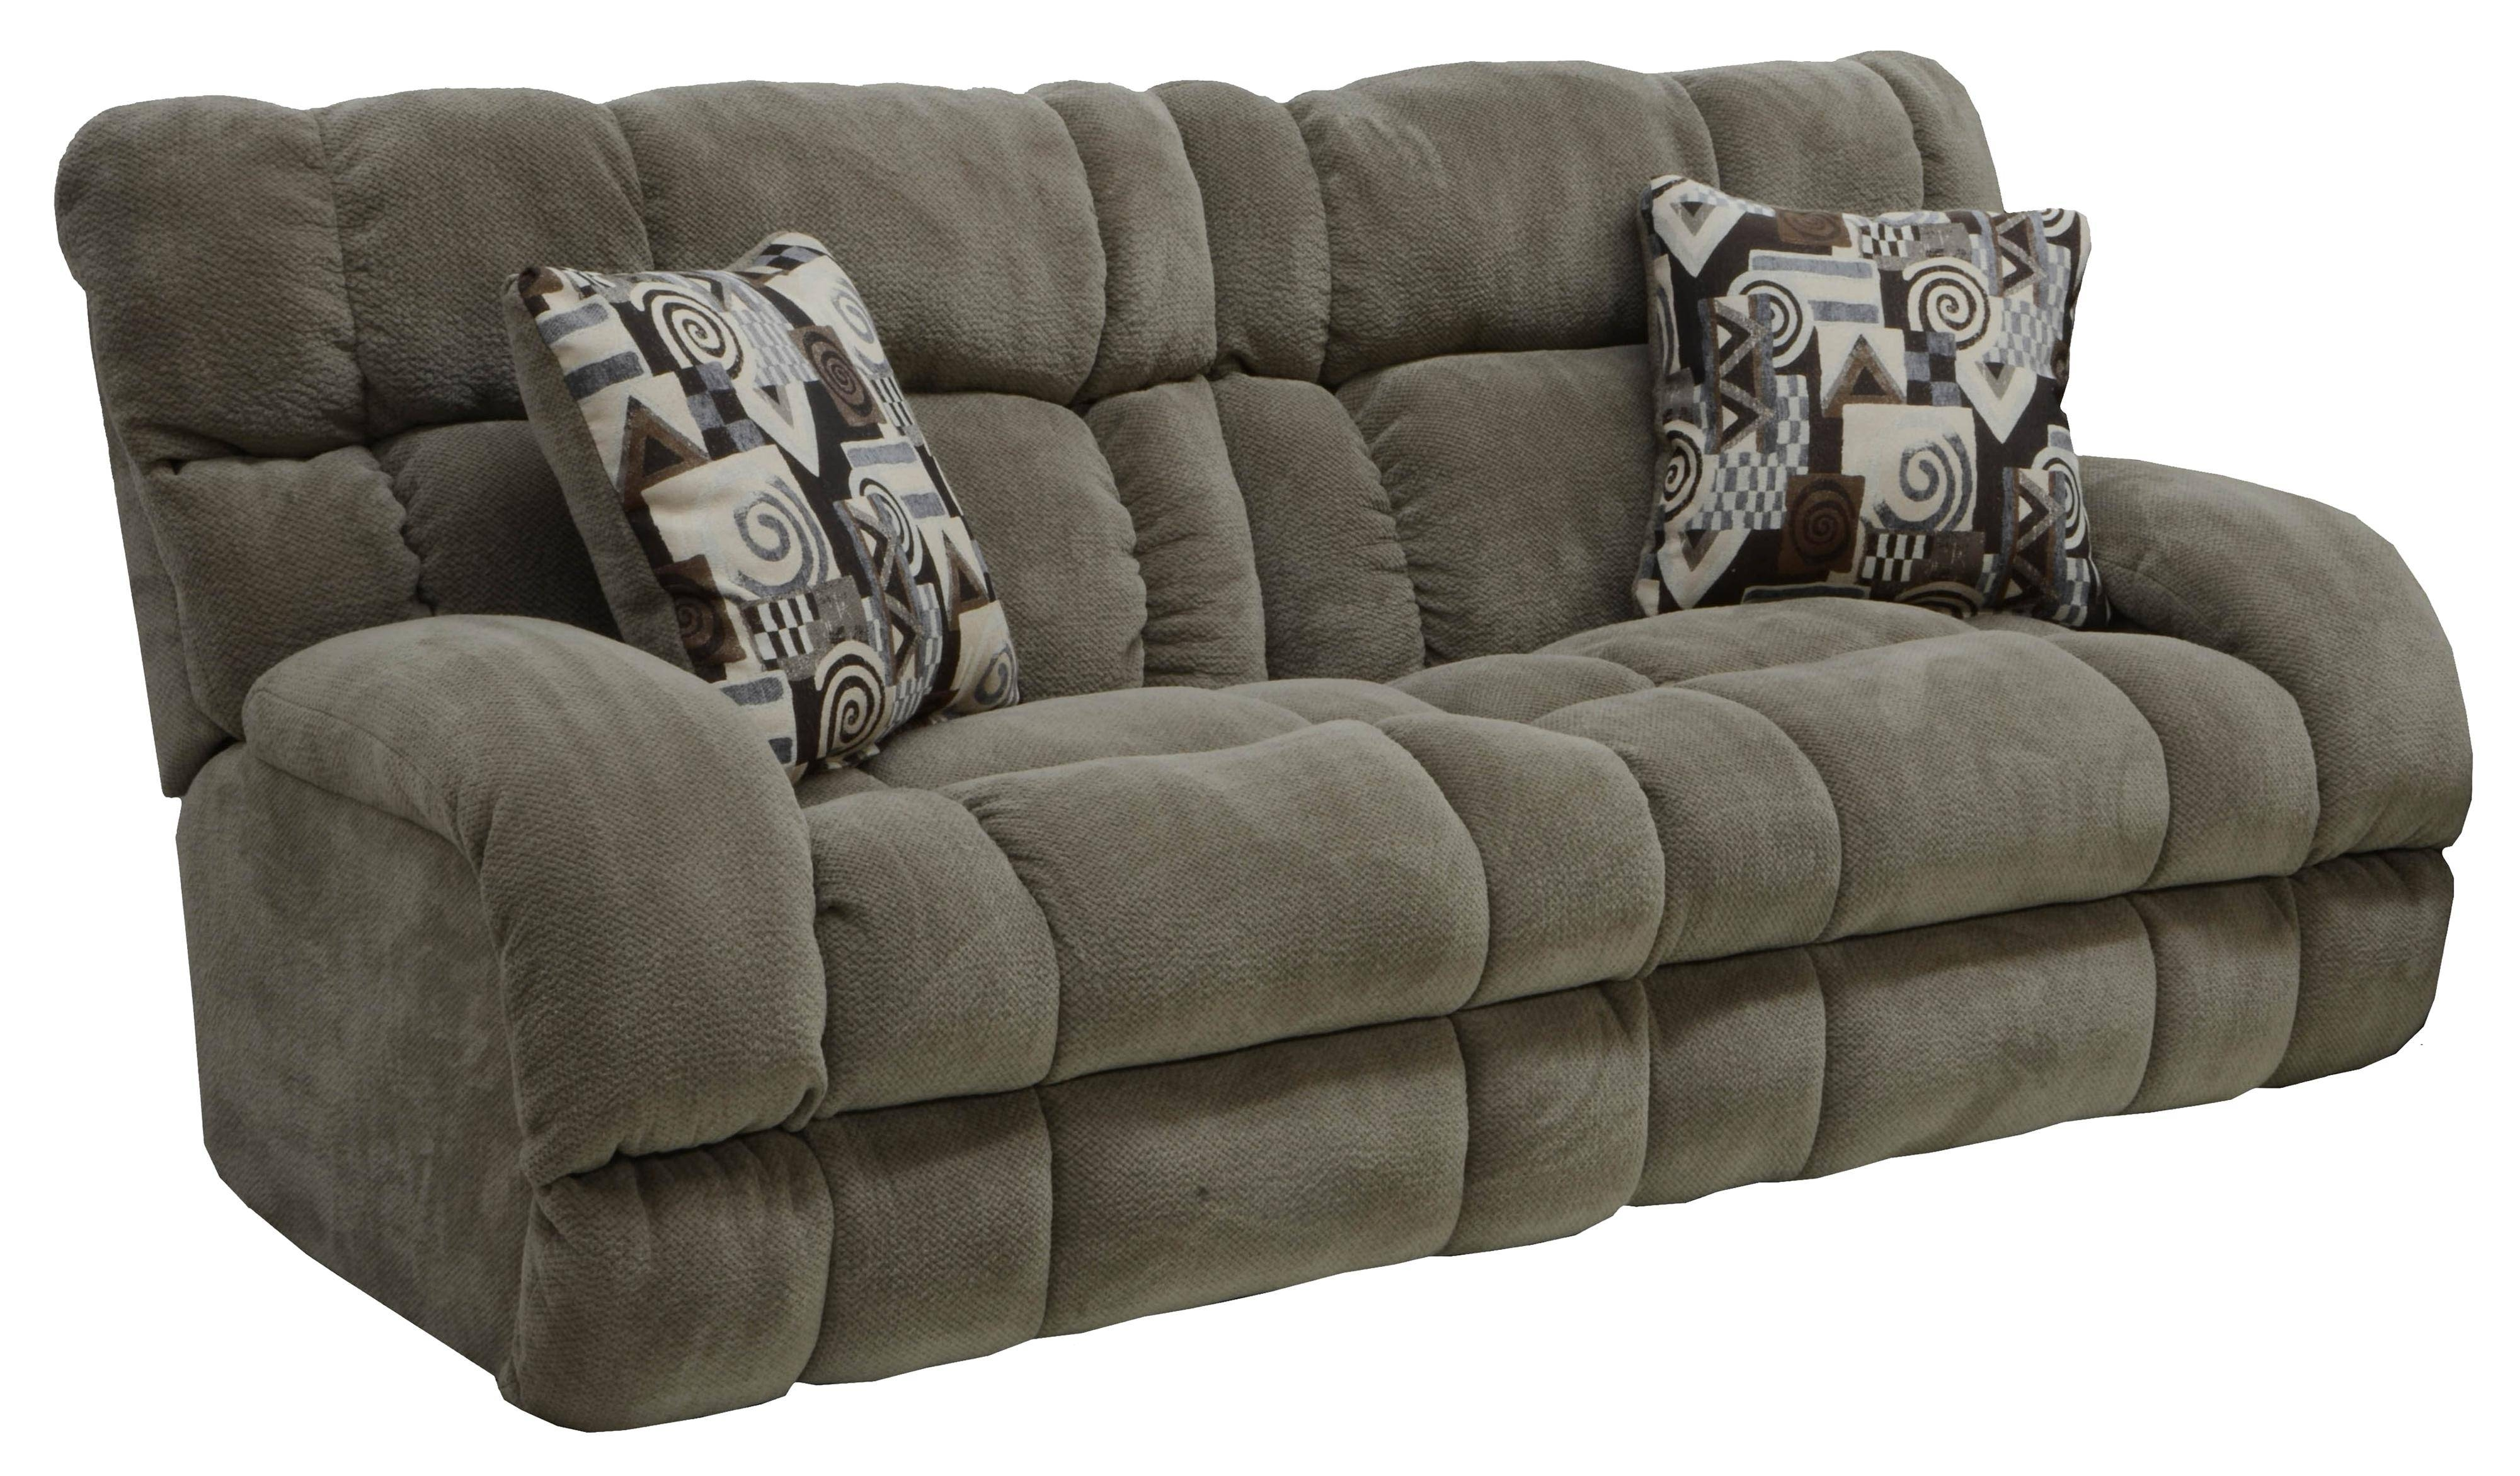 Power Lay Flat Reclining Sofa With Wide Seatscatnapper | Wolf inside Catnapper Reclining Sofas (Image 14 of 15)